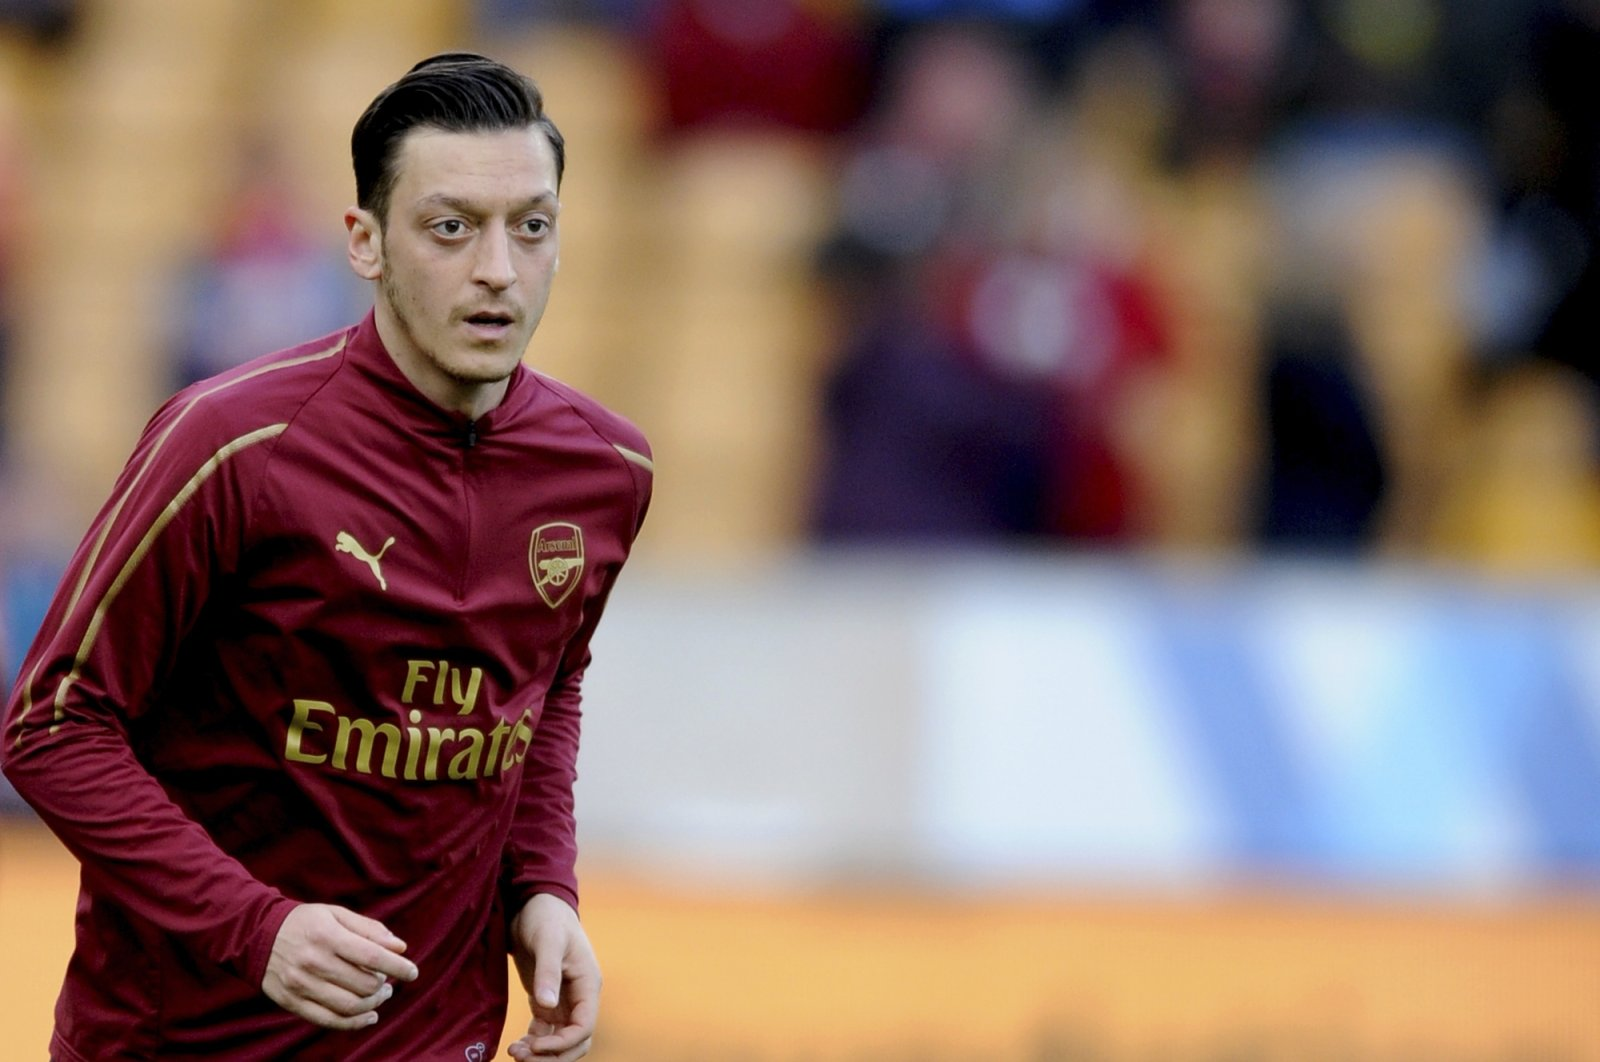 Arsenal's Mesut Özil runs during warmup before a Premier League match against Wolverhampton Wanderers at the Molineux Stadium in Wolverhampton, England, April 24, 2019. (AP Photo)